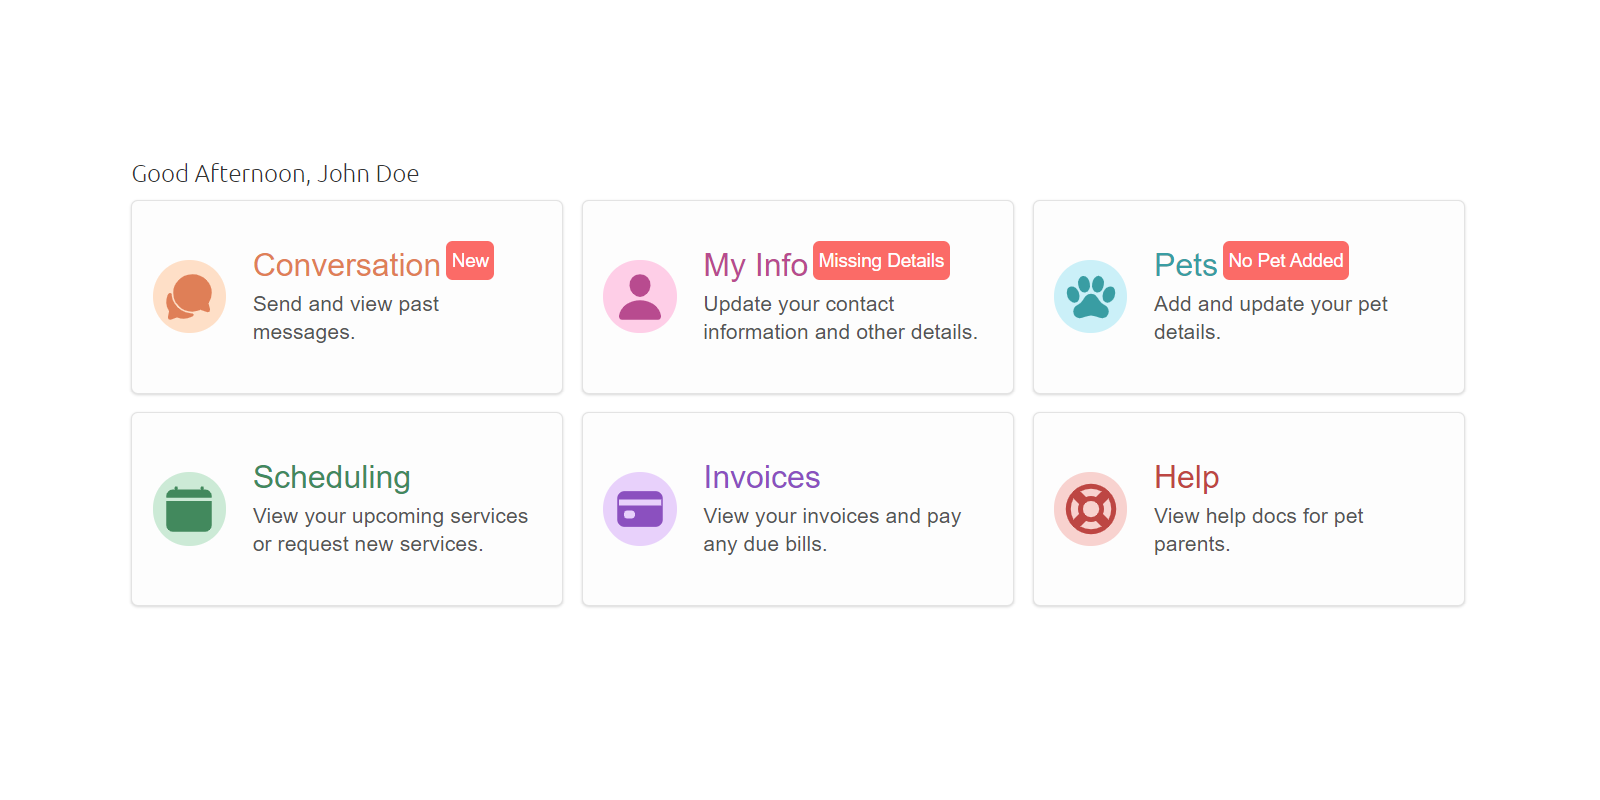 pet-parent-portal-homepage-summary.png